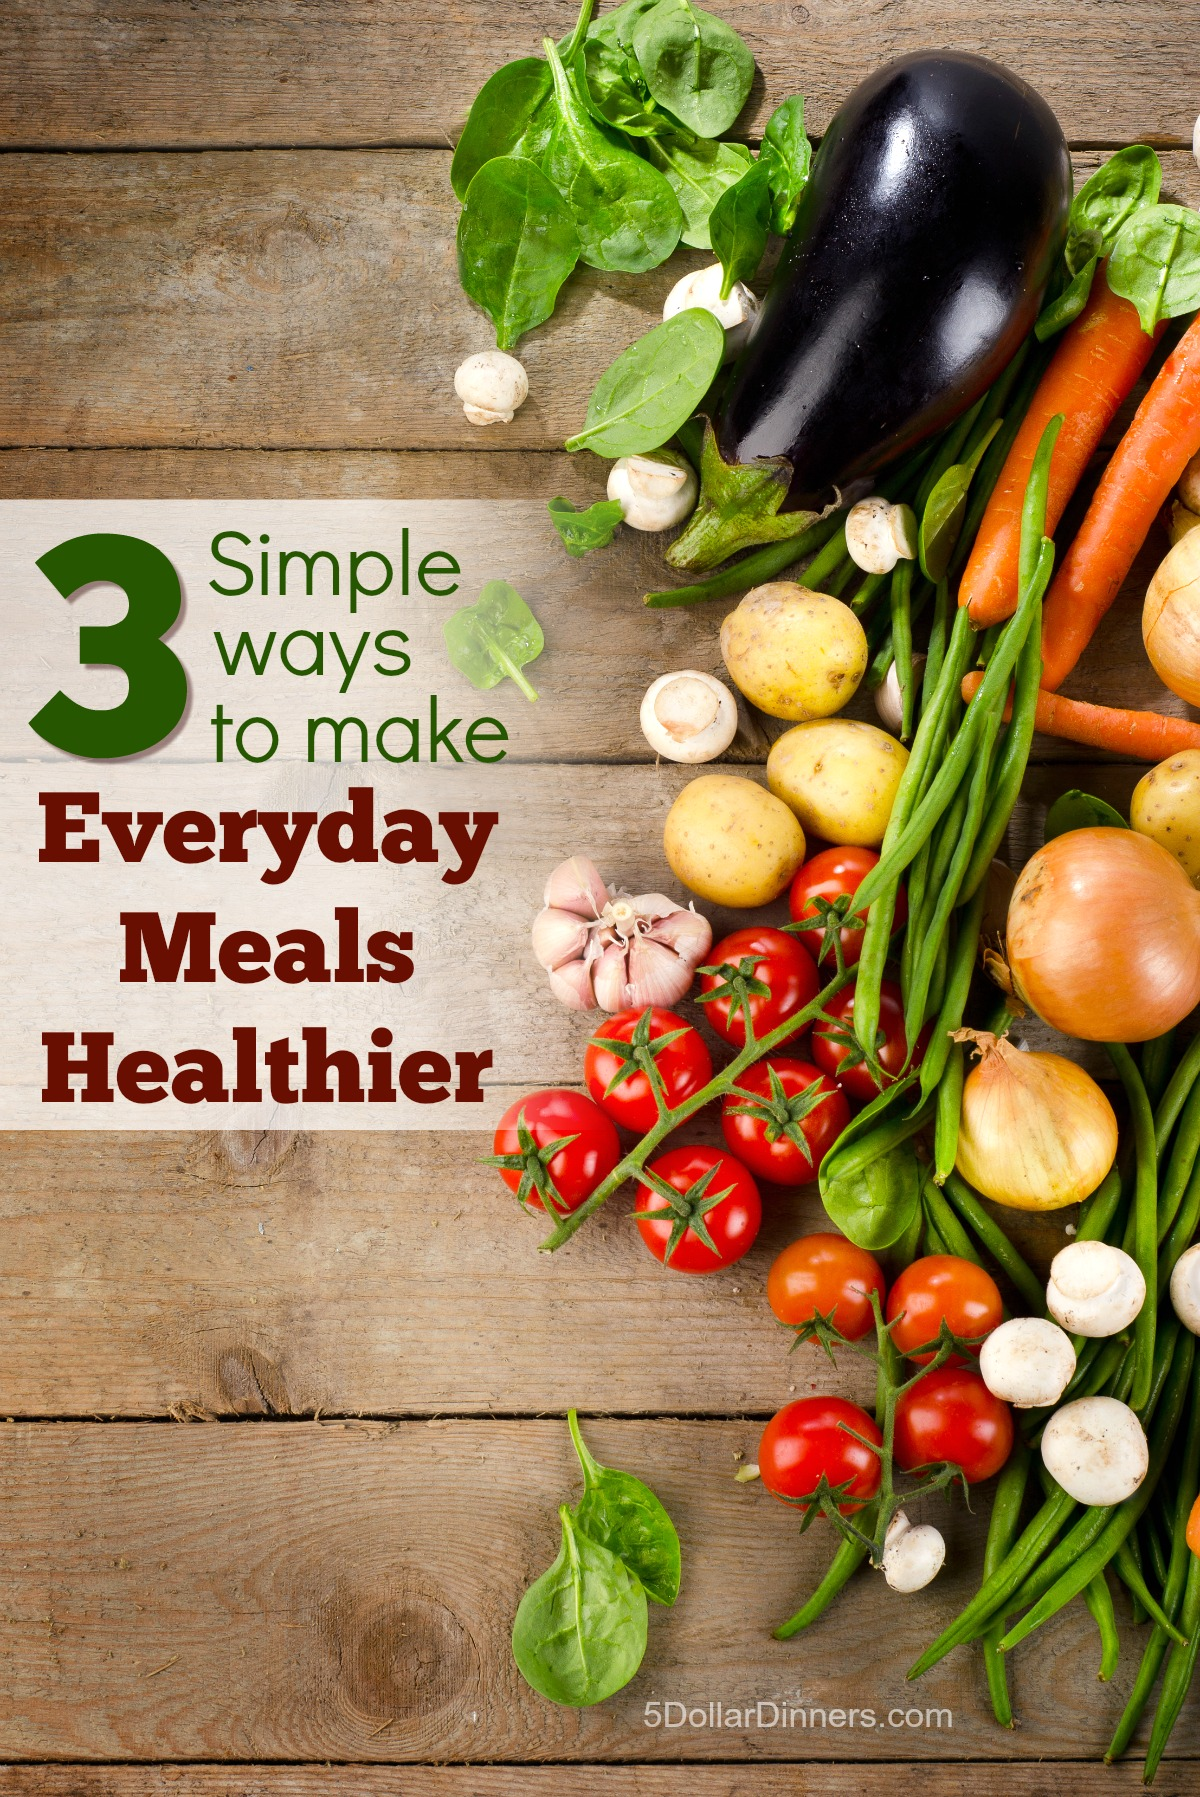 3 Simple Ways to Make Everyday Meals Healthier from 5DollarDinners.com